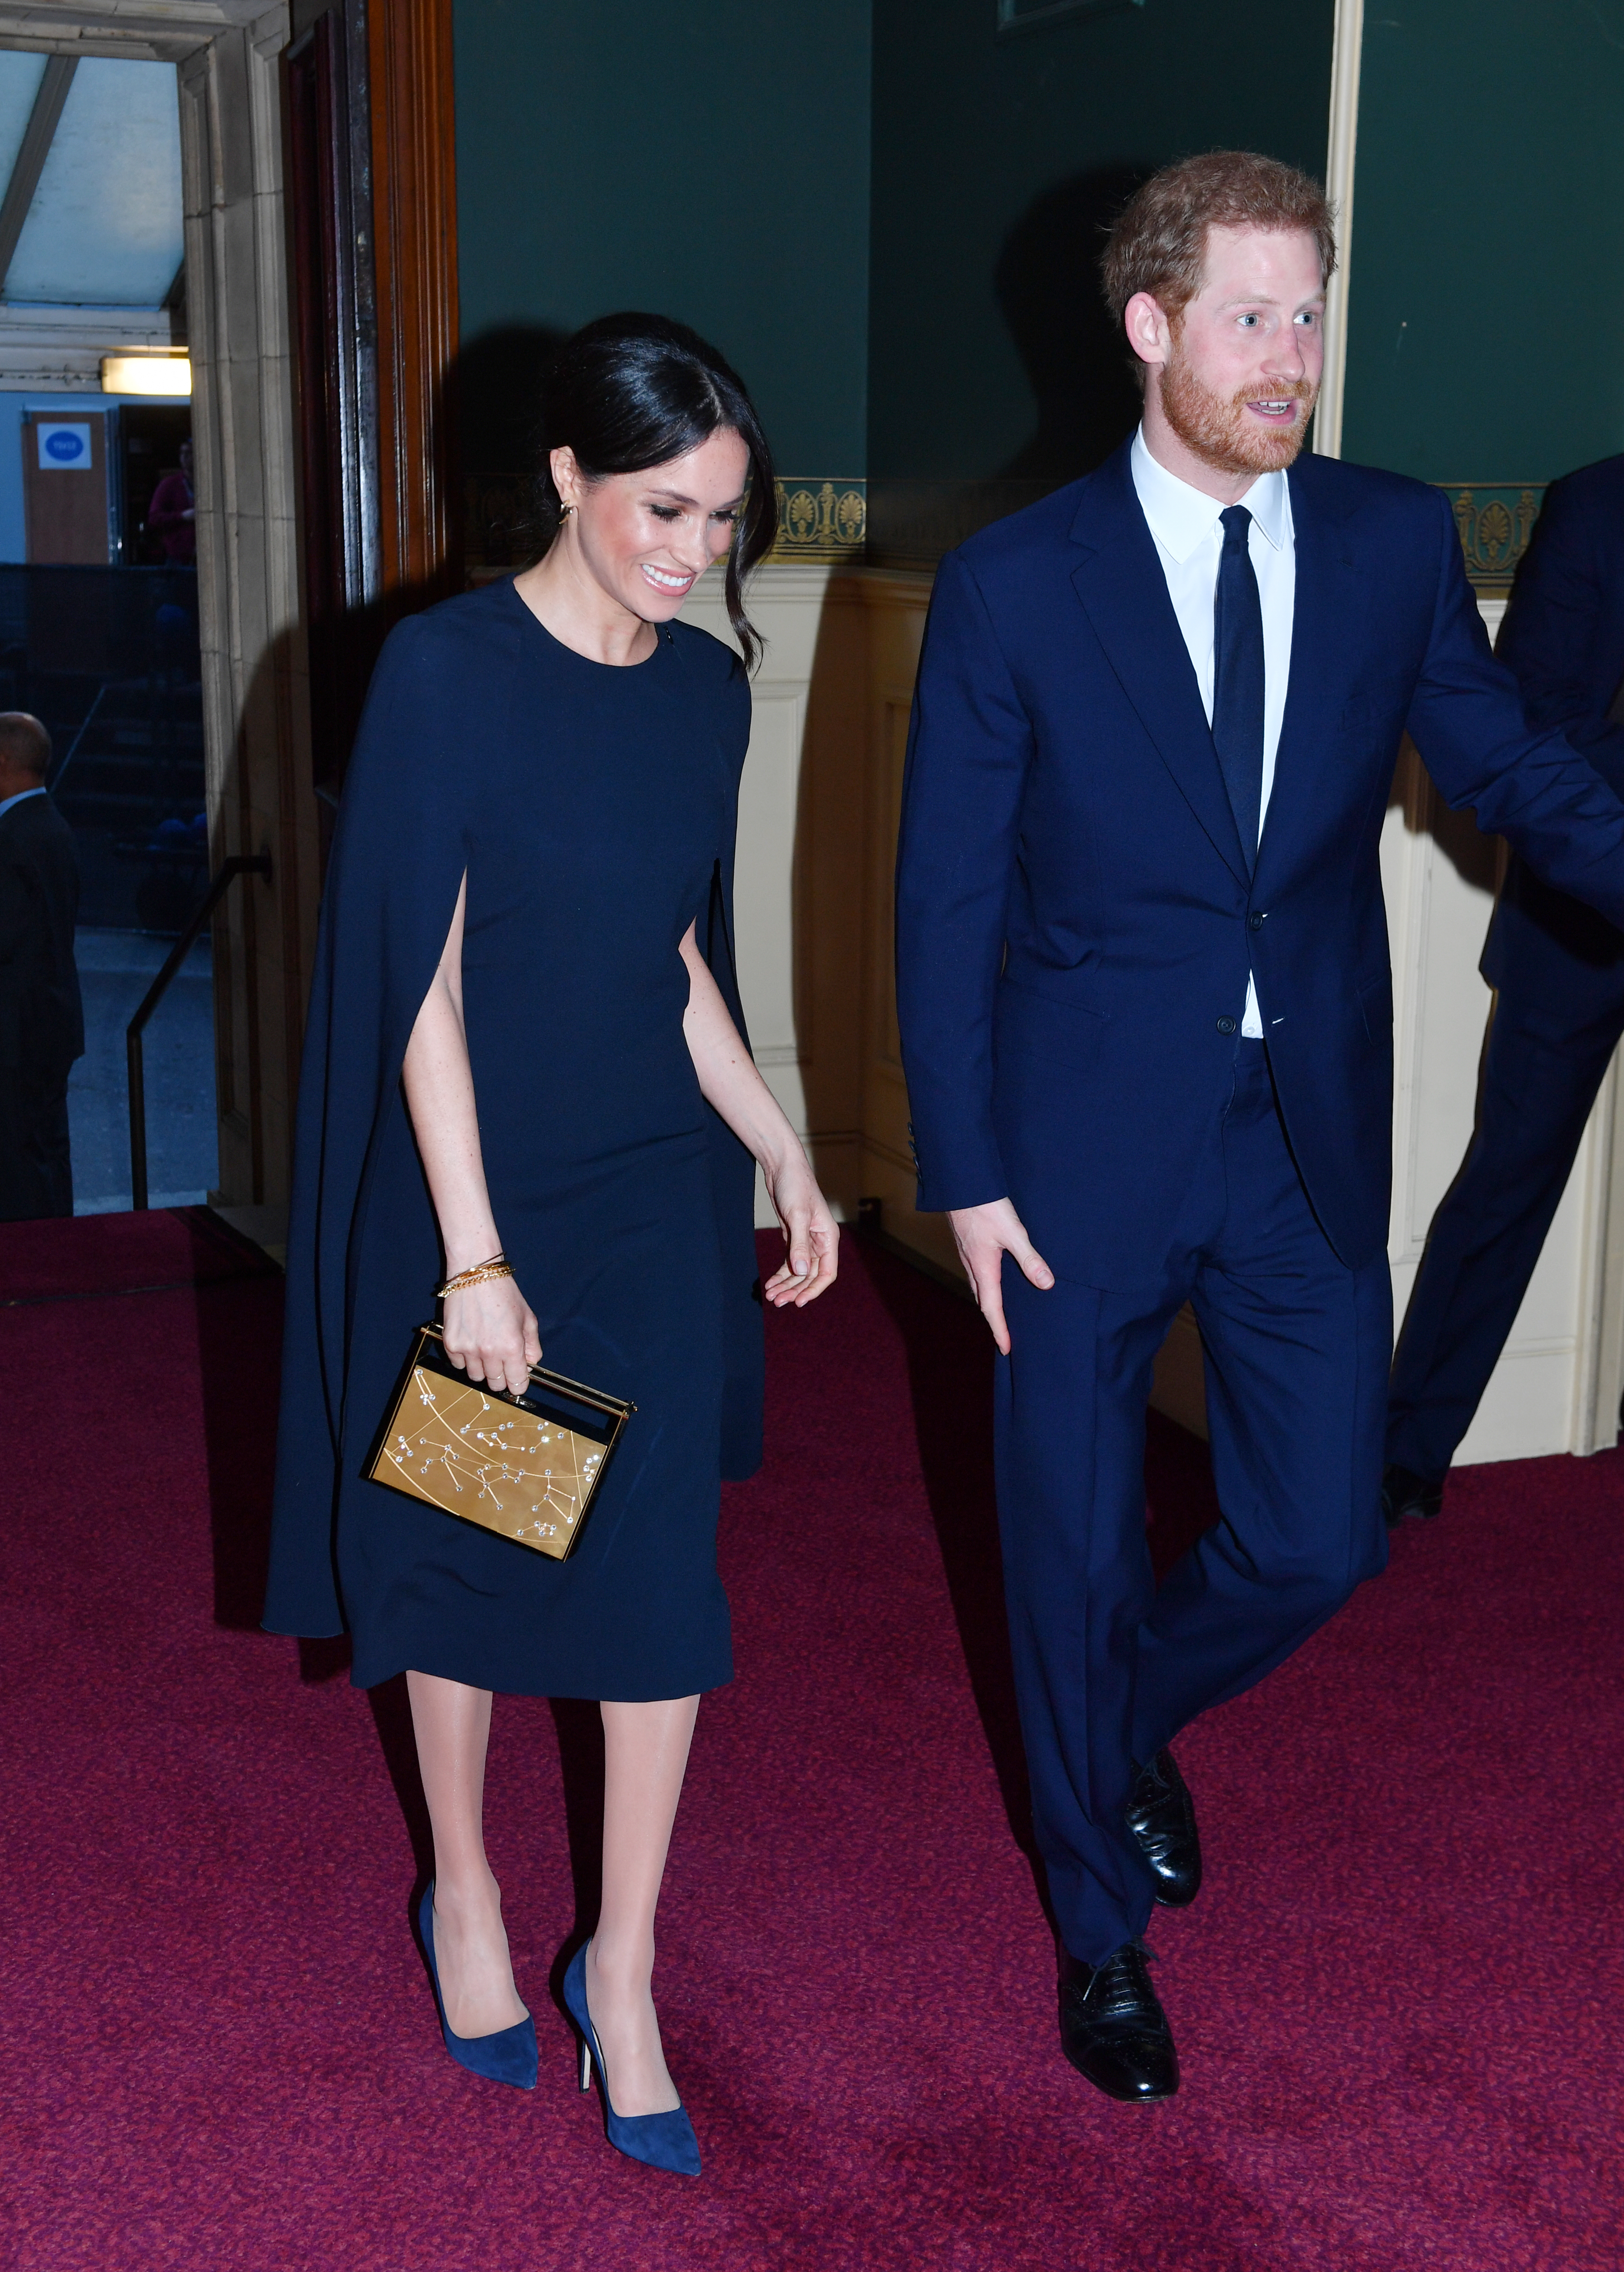 Prince Harry and Meghan Markle arrive at the Royal Albert Hall to attend a star-studded concert to celebrate the Queen's 92nd birthday on April 21, 2018 in London, England.  The Queen and members of the royal family are guests of honour at the celebration, which is being billed as The Queen's Birthday Party.